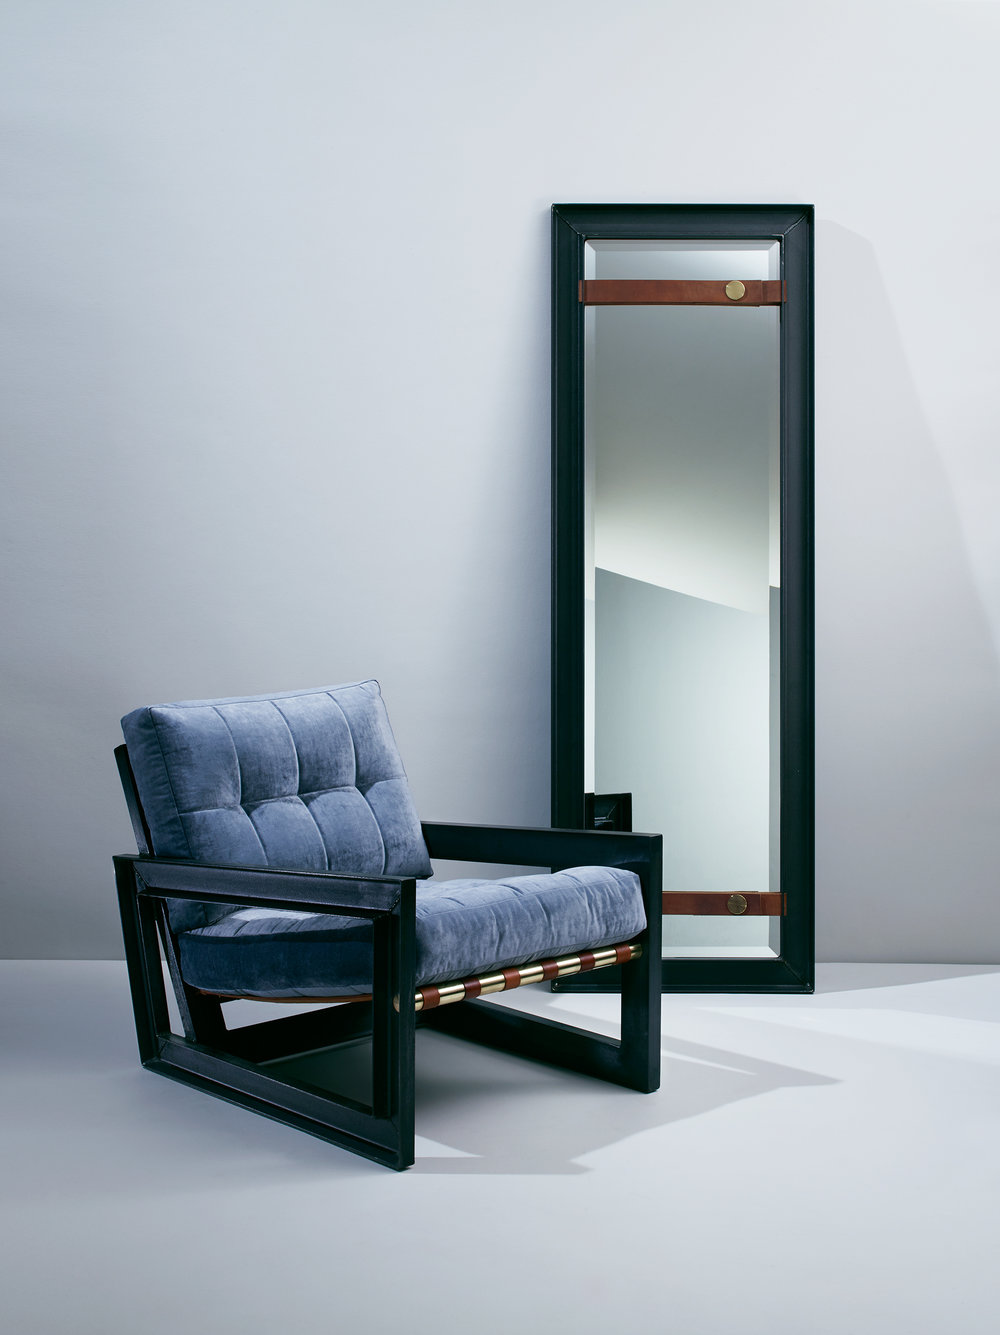 PS1_Chair_Mirror_COMP_R1_Blue_2500pxl.jpg